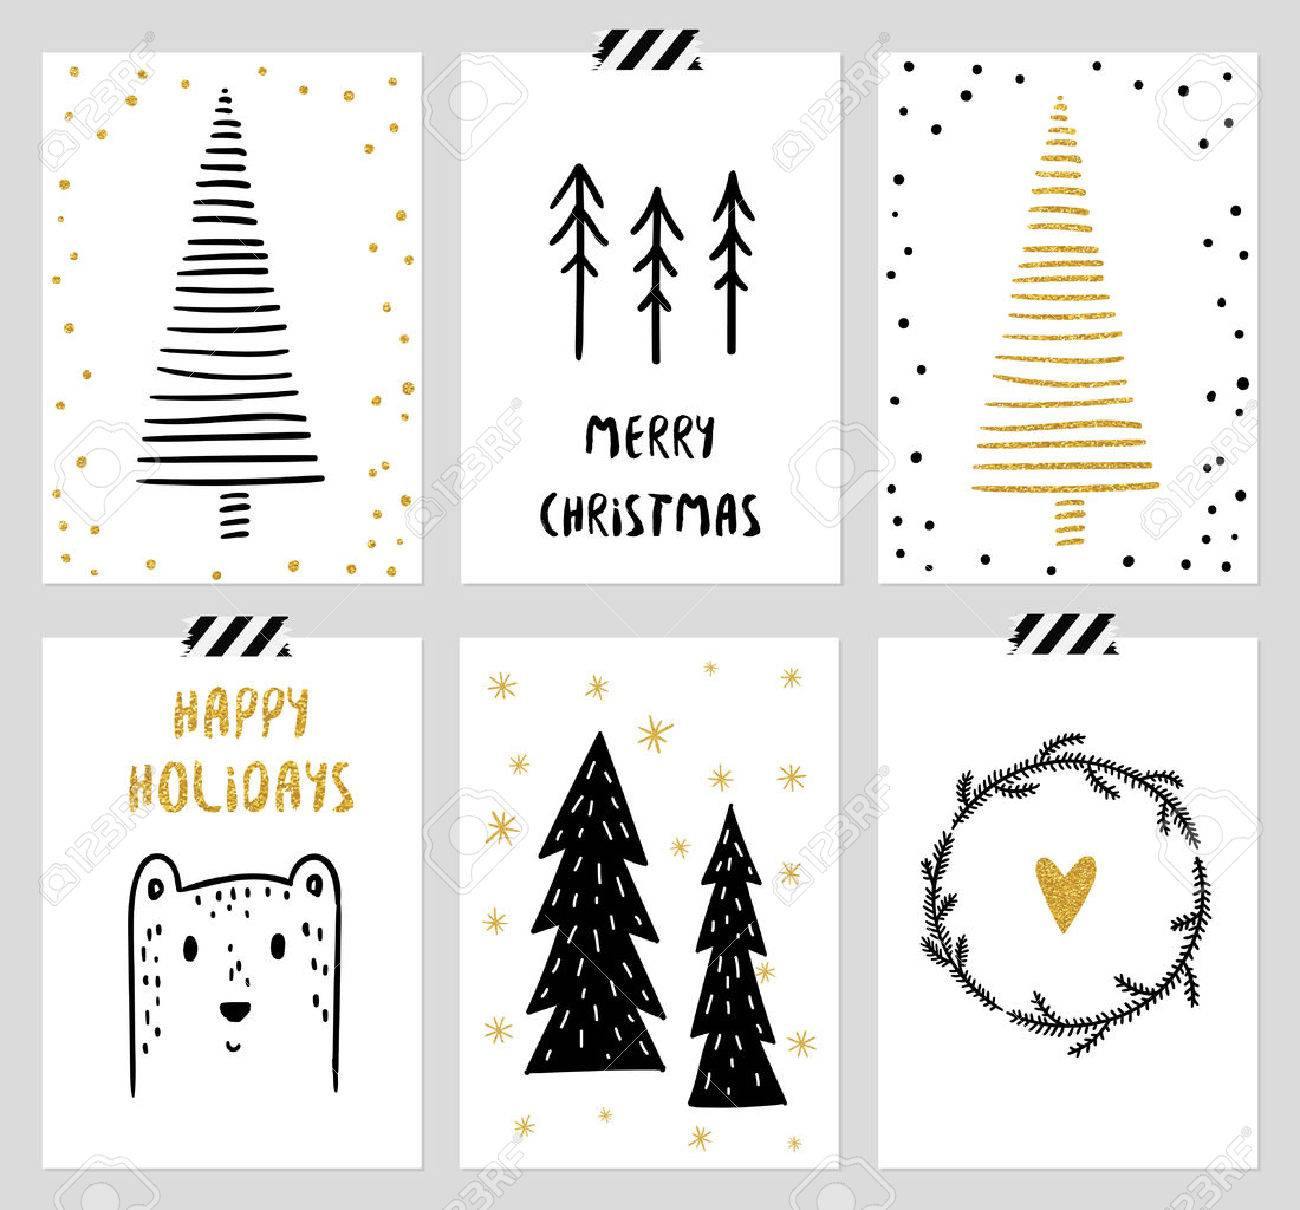 Christmas And New Year S 6 Cards Collection Set Of Winter Holiday Royalty Free Cliparts Vectors And Stock Illustration Image 47782425